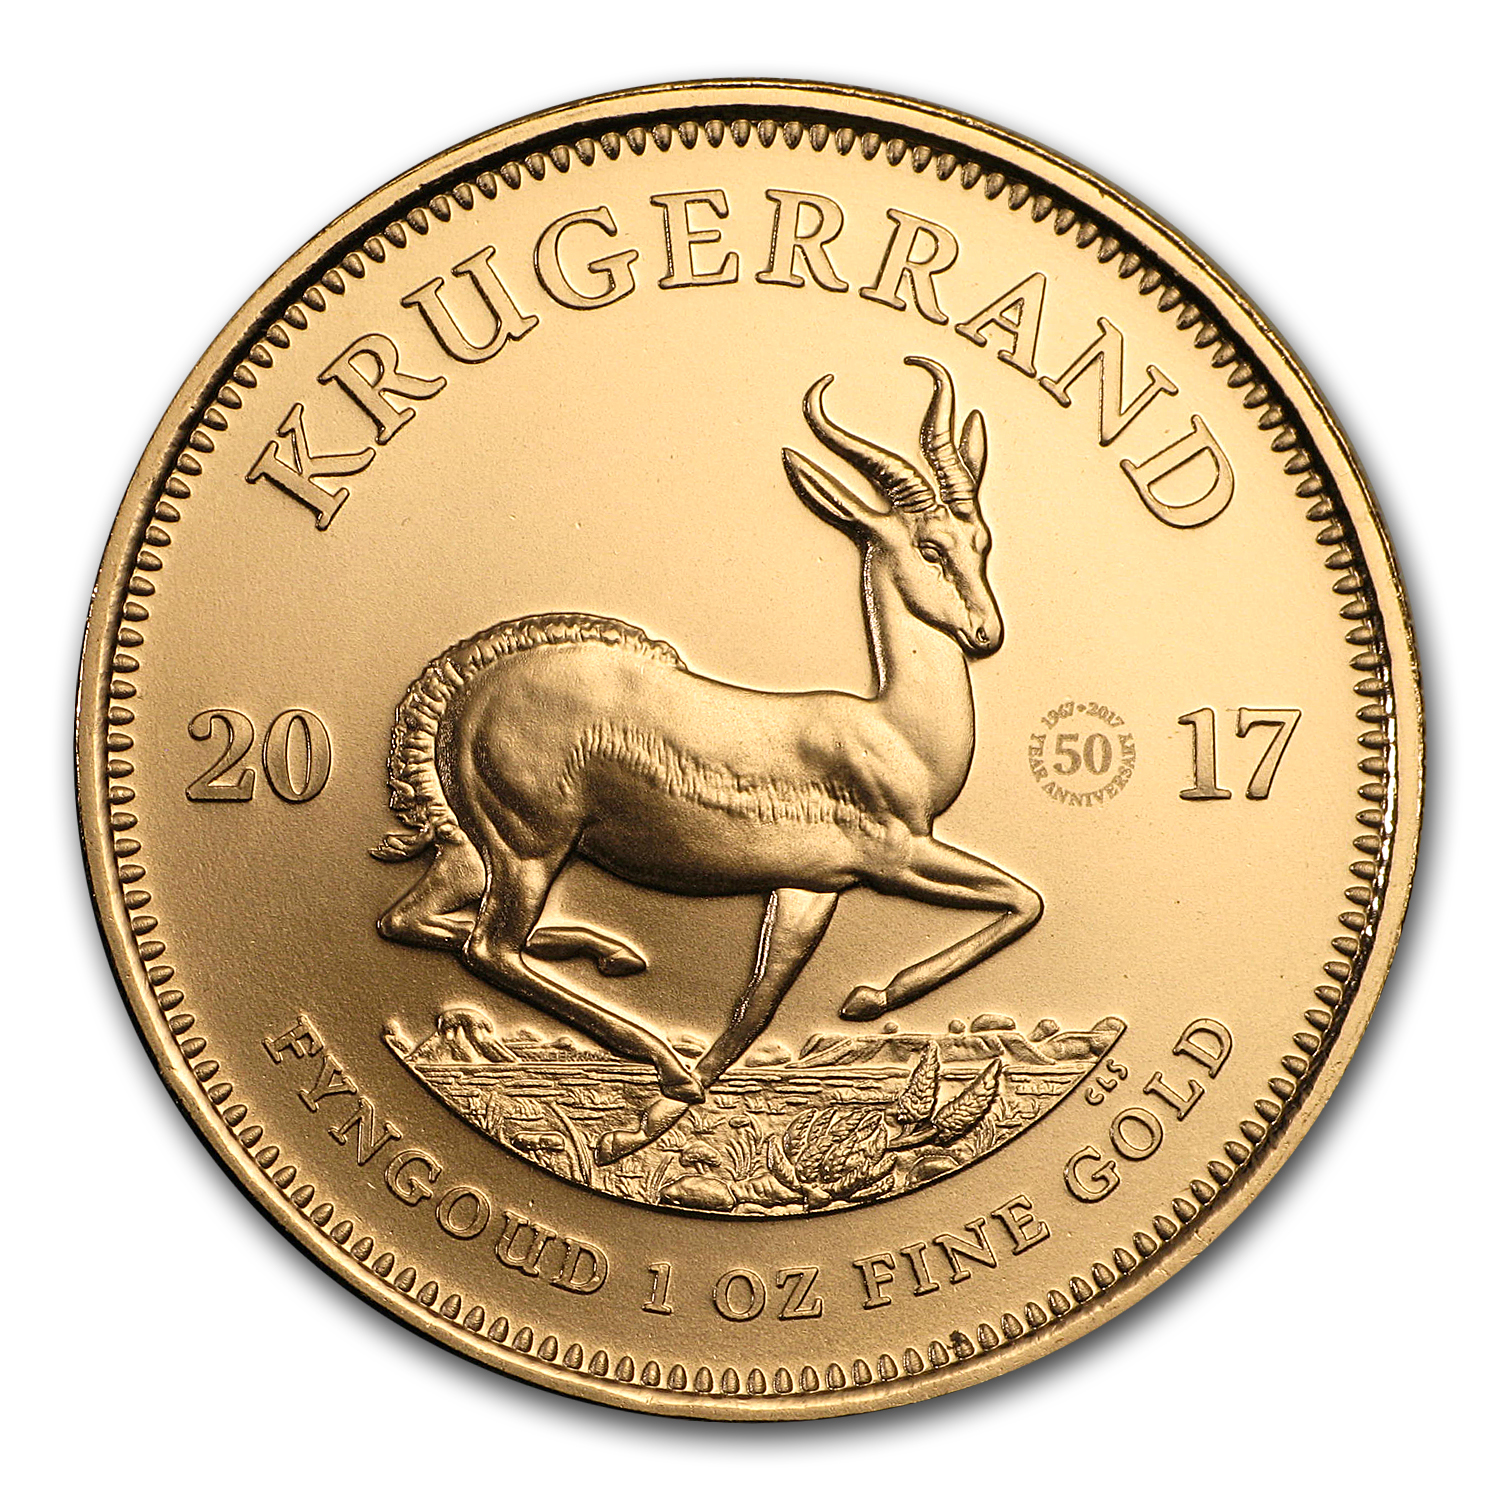 2017 South Africa 1 oz Gold Krugerrand 50th Anniv. BU (Privy)